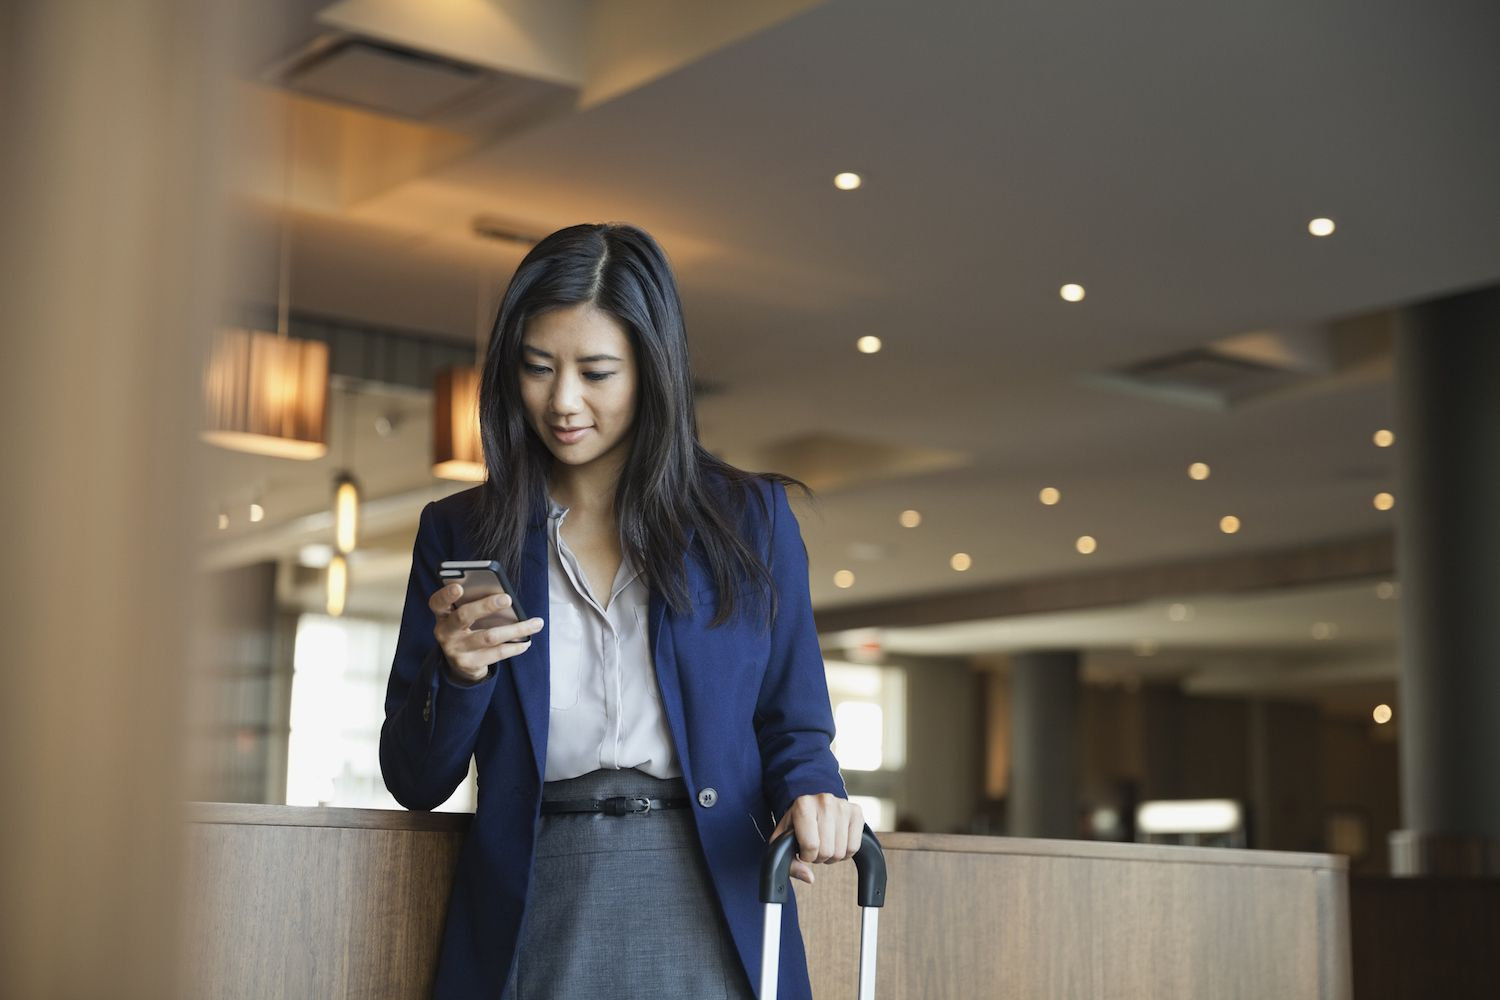 Lawyer using smart phone in hotel lobby